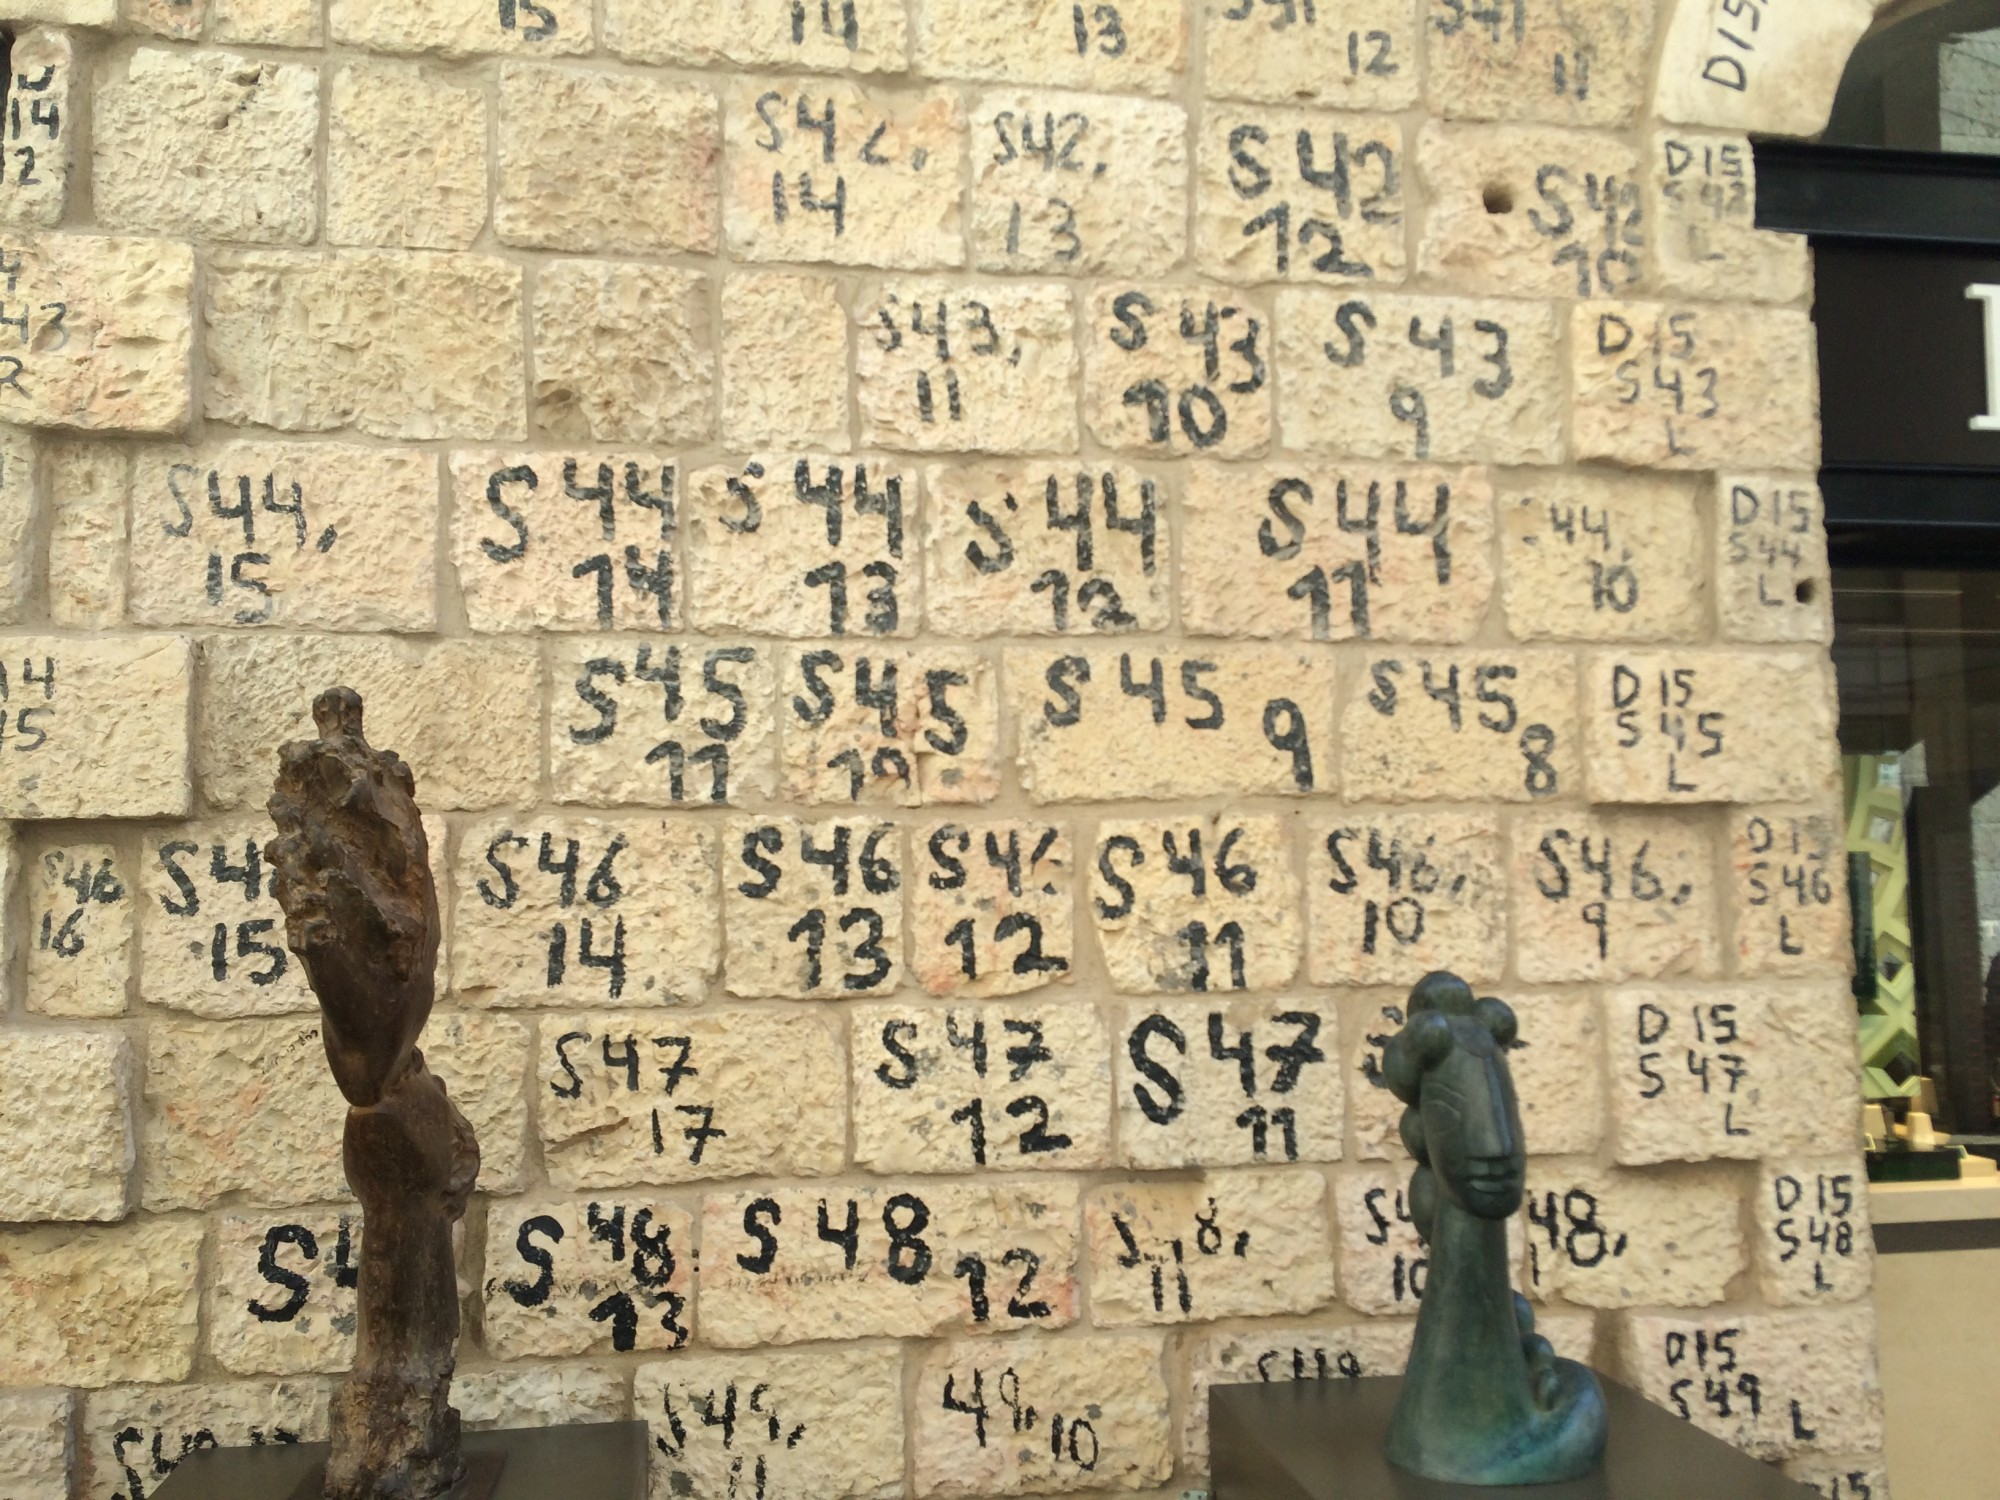 These old stones are part of a modern passageway in Jerusalem.   They have a previous history: they were part of ancient buildings, and the markings tell of their previous life.  Who knows what they've seen.  Let the stones speak.